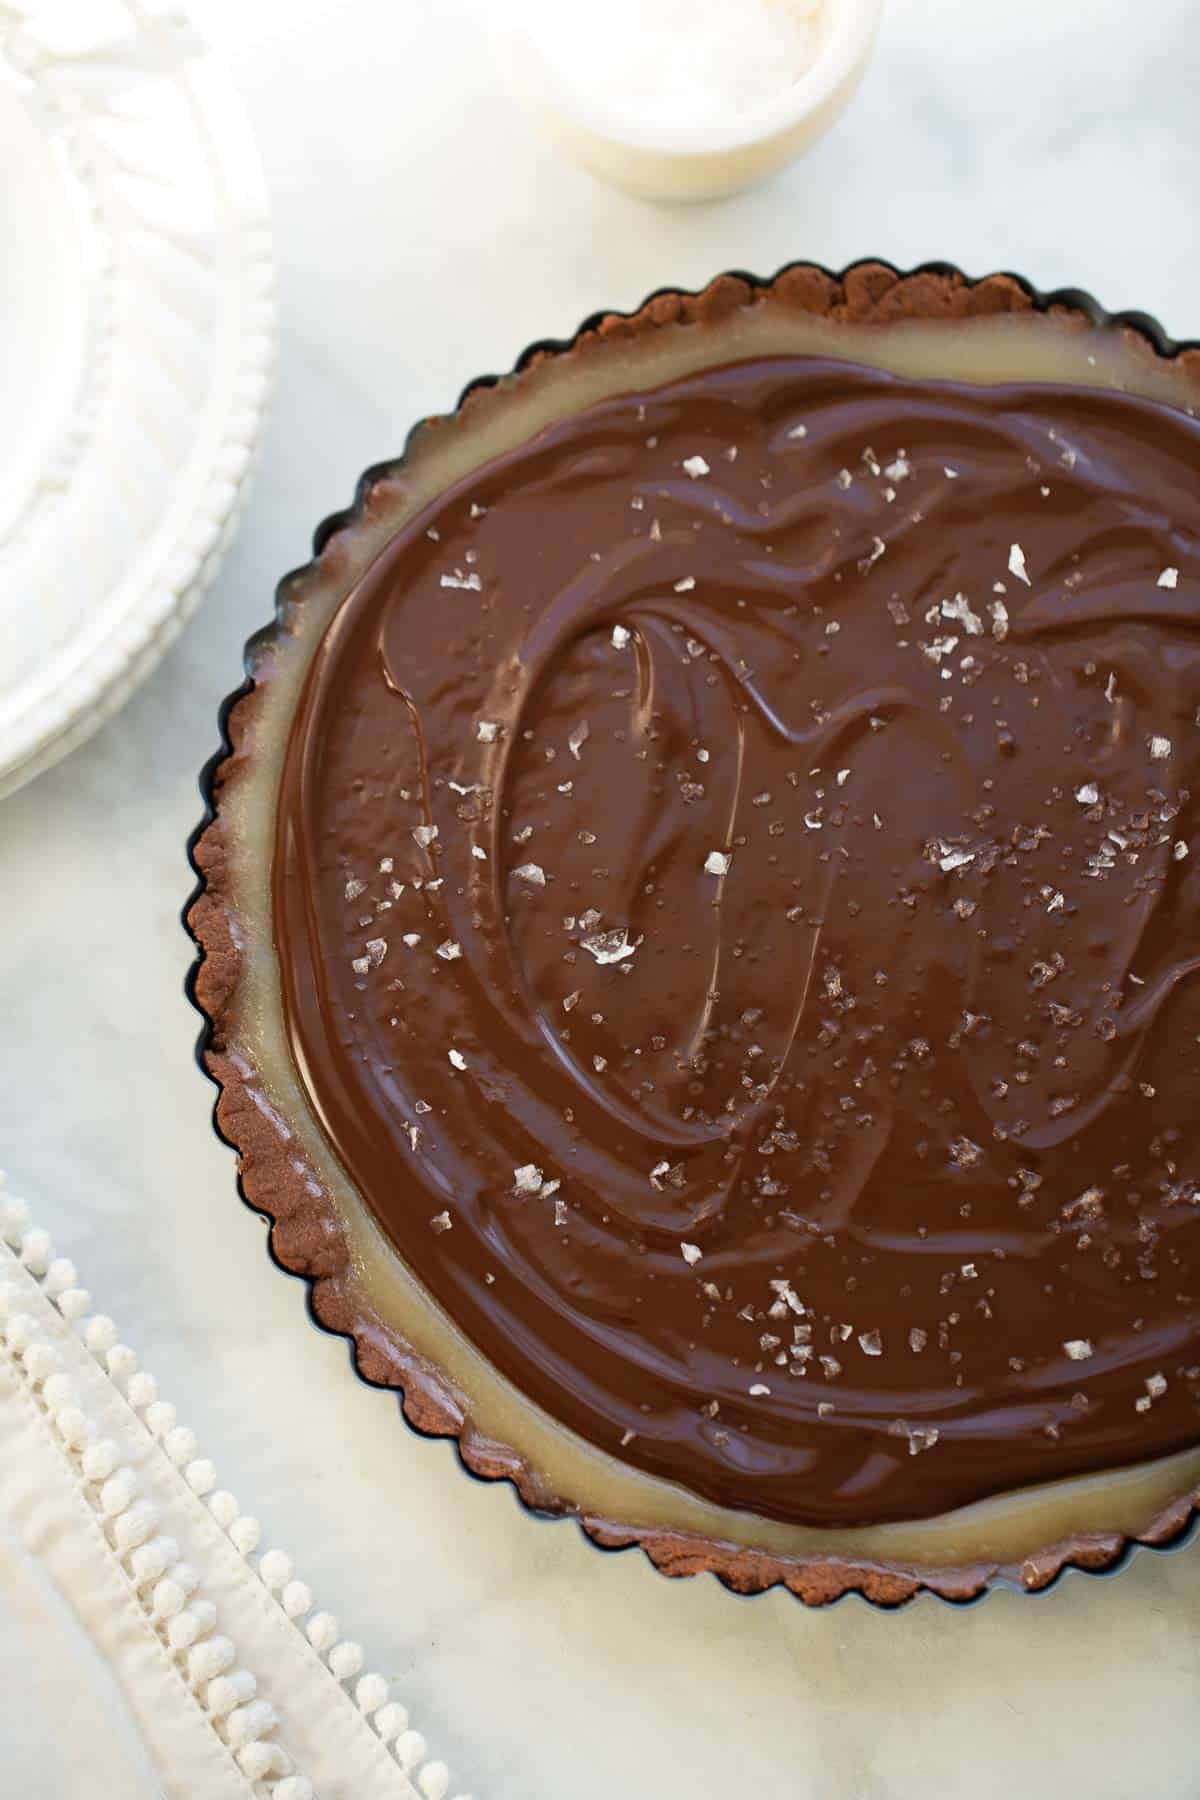 close up shot of chocolate caramel tart in pan